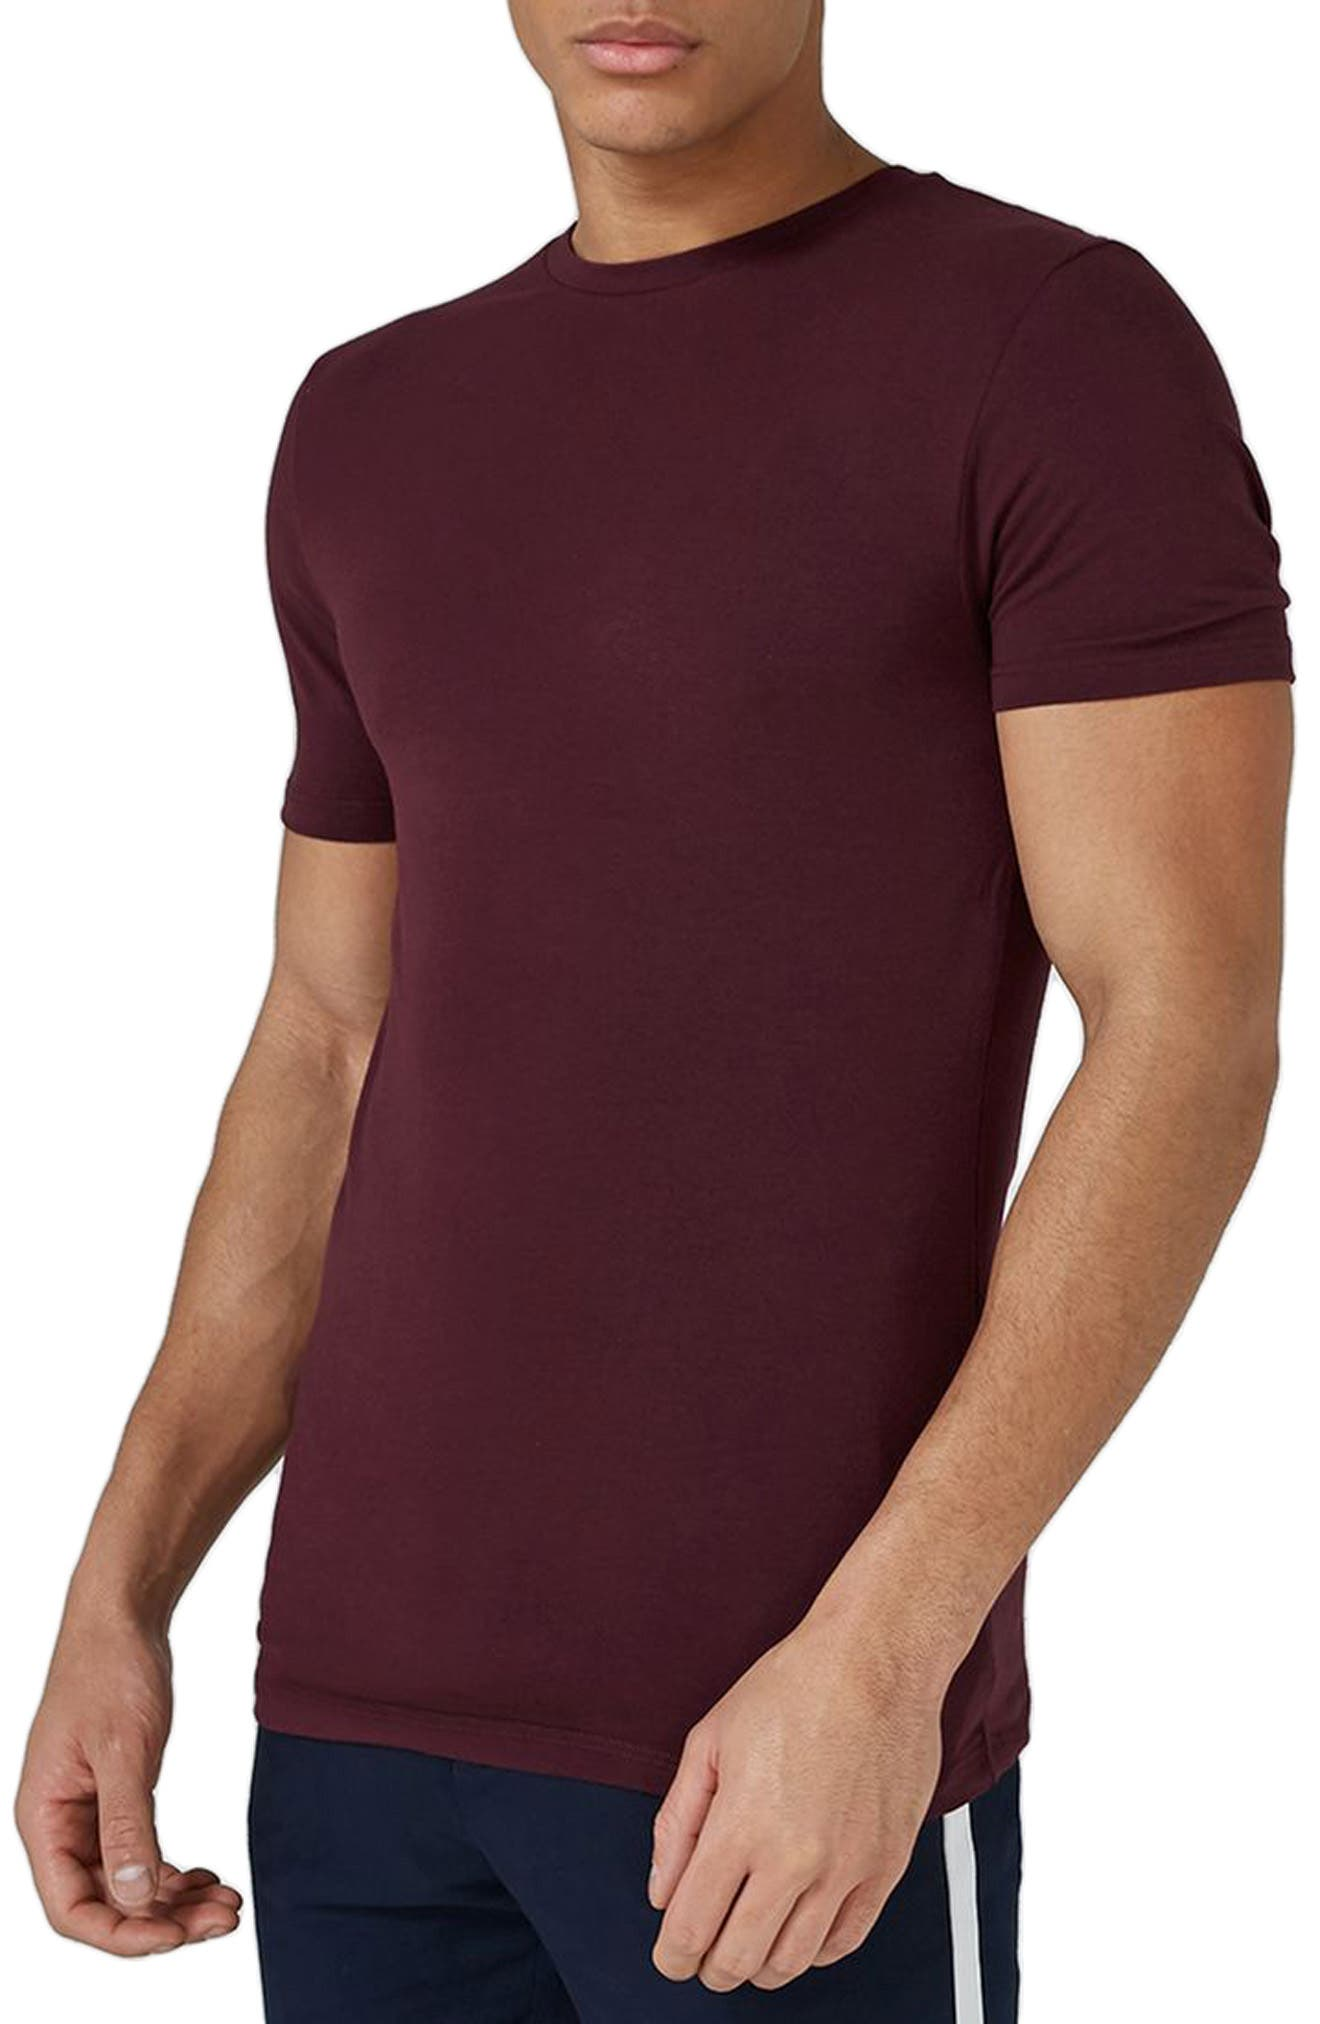 Ultra Muscle Fit T-Shirt,                             Main thumbnail 1, color,                             930